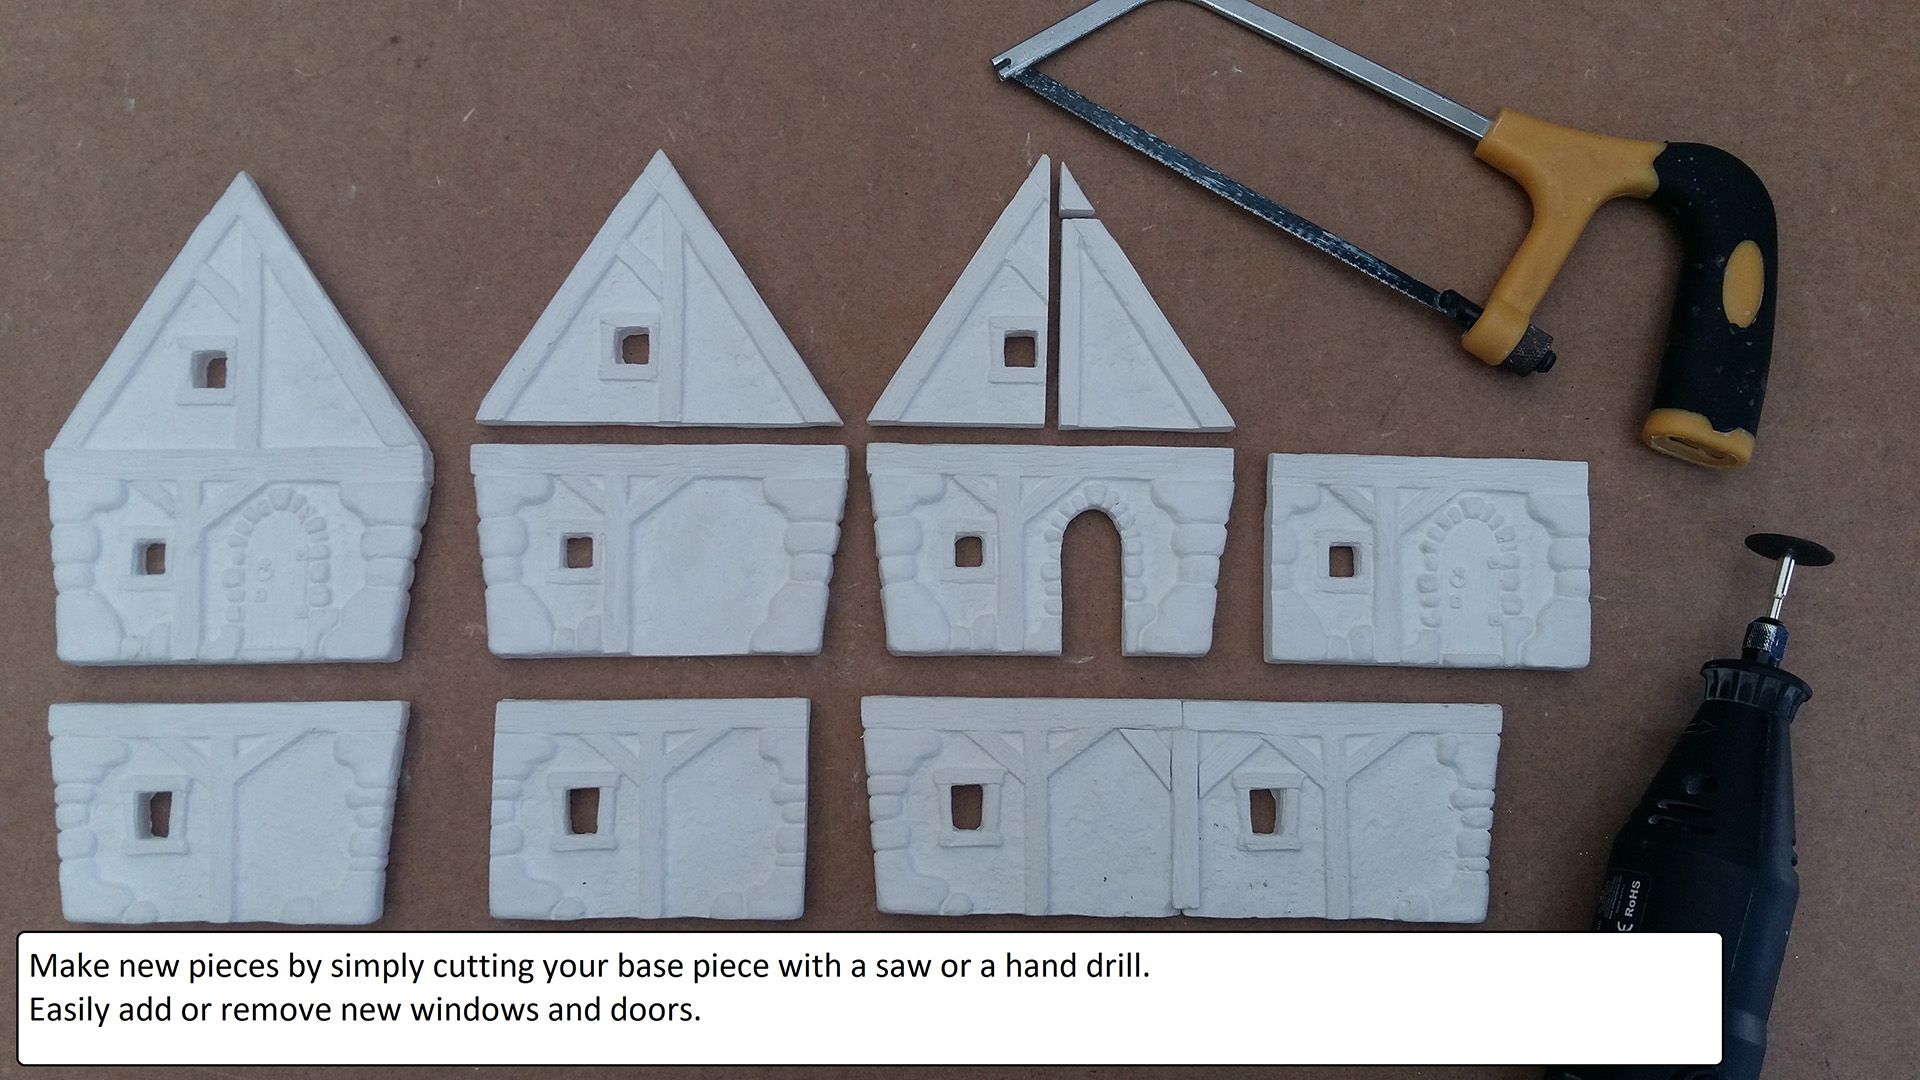 SCENERY FORGE MOLDS SYSTEM